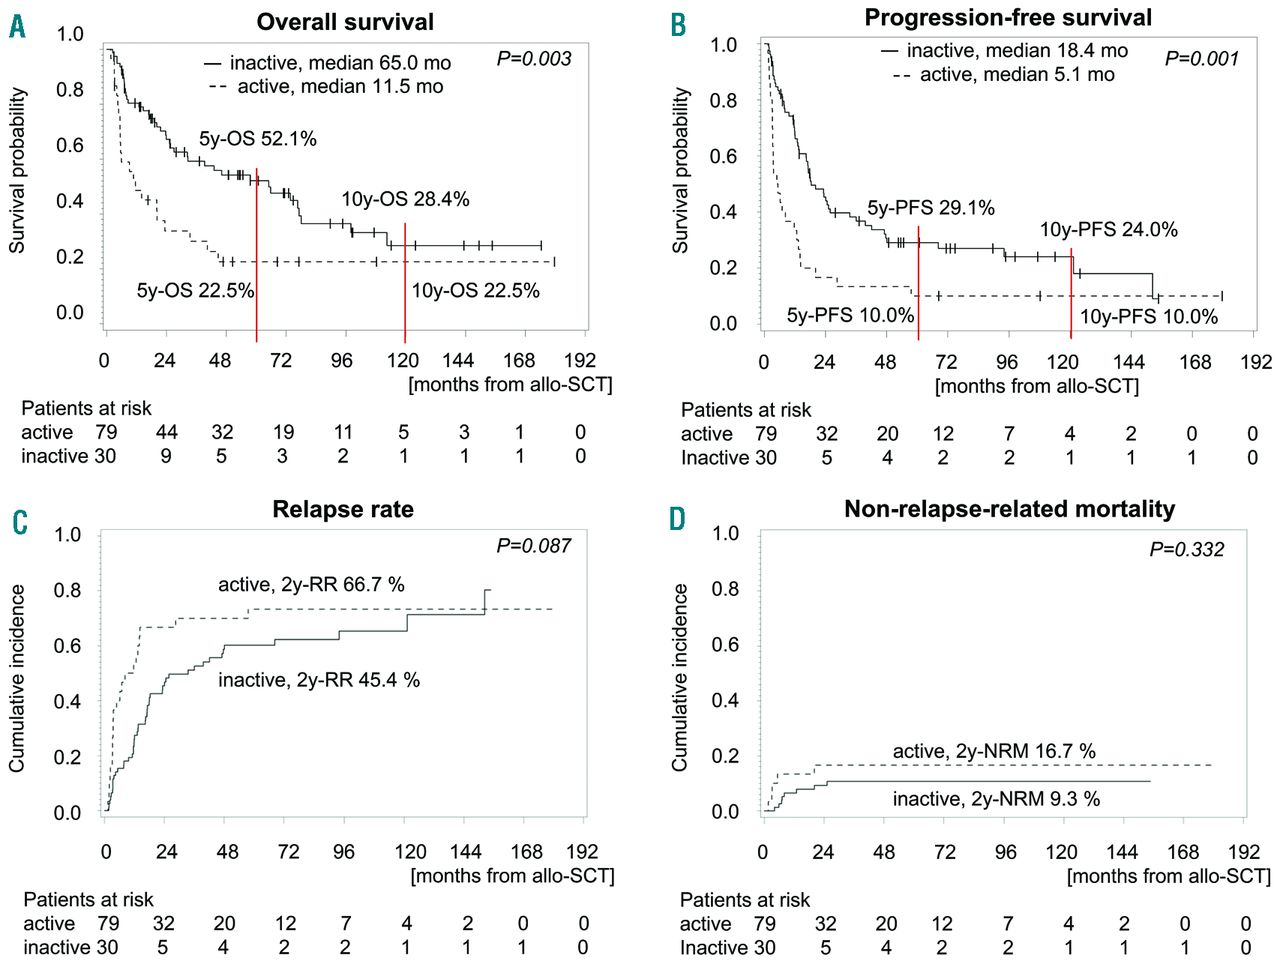 Allogeneic Transplantation Of Multiple Myeloma Patients May Allow Long Term Survival In Carefully Selected Patients With Acceptable Toxicity And Preserved Quality Of Life Haematologica